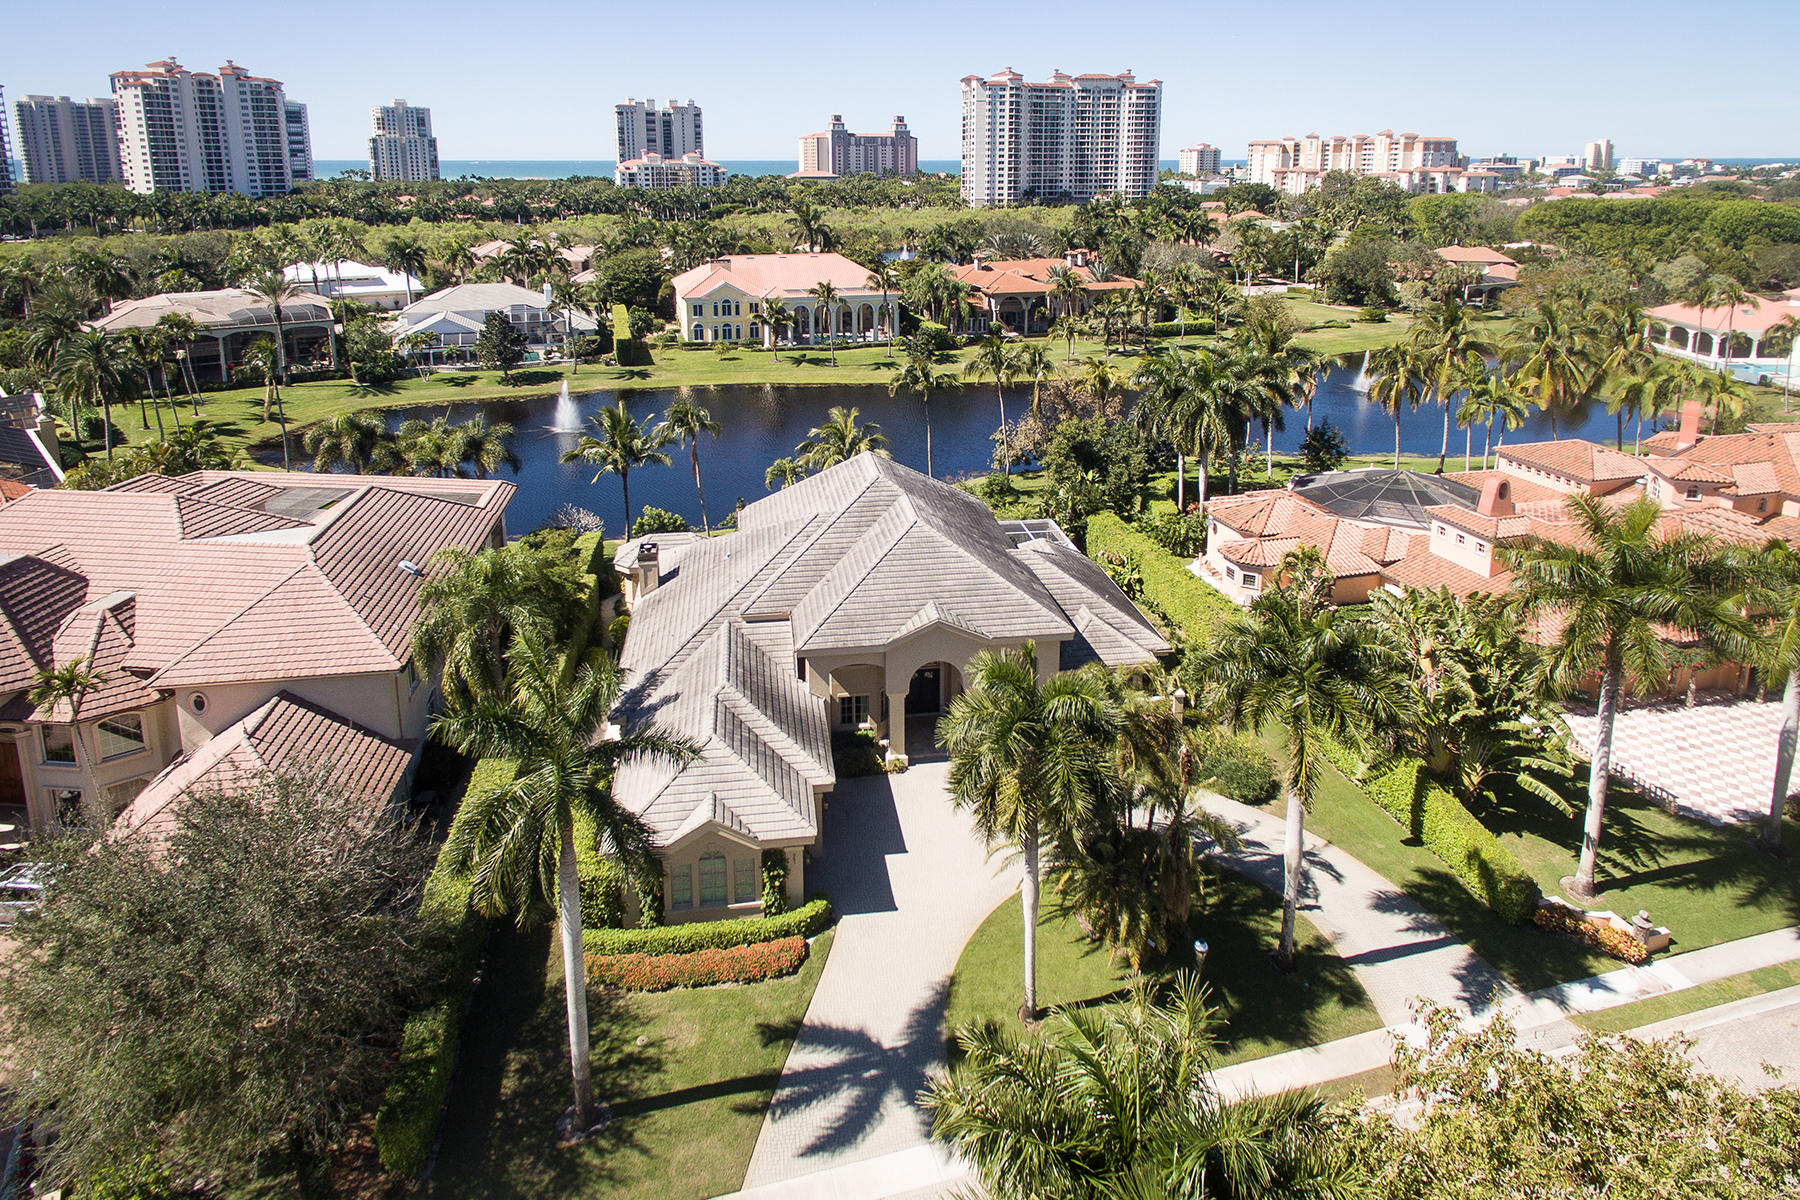 Single Family Home for Sale at PELICAN BAY - BAY COLONY SHORES 367 Colony Dr Naples, Florida, 34108 United States